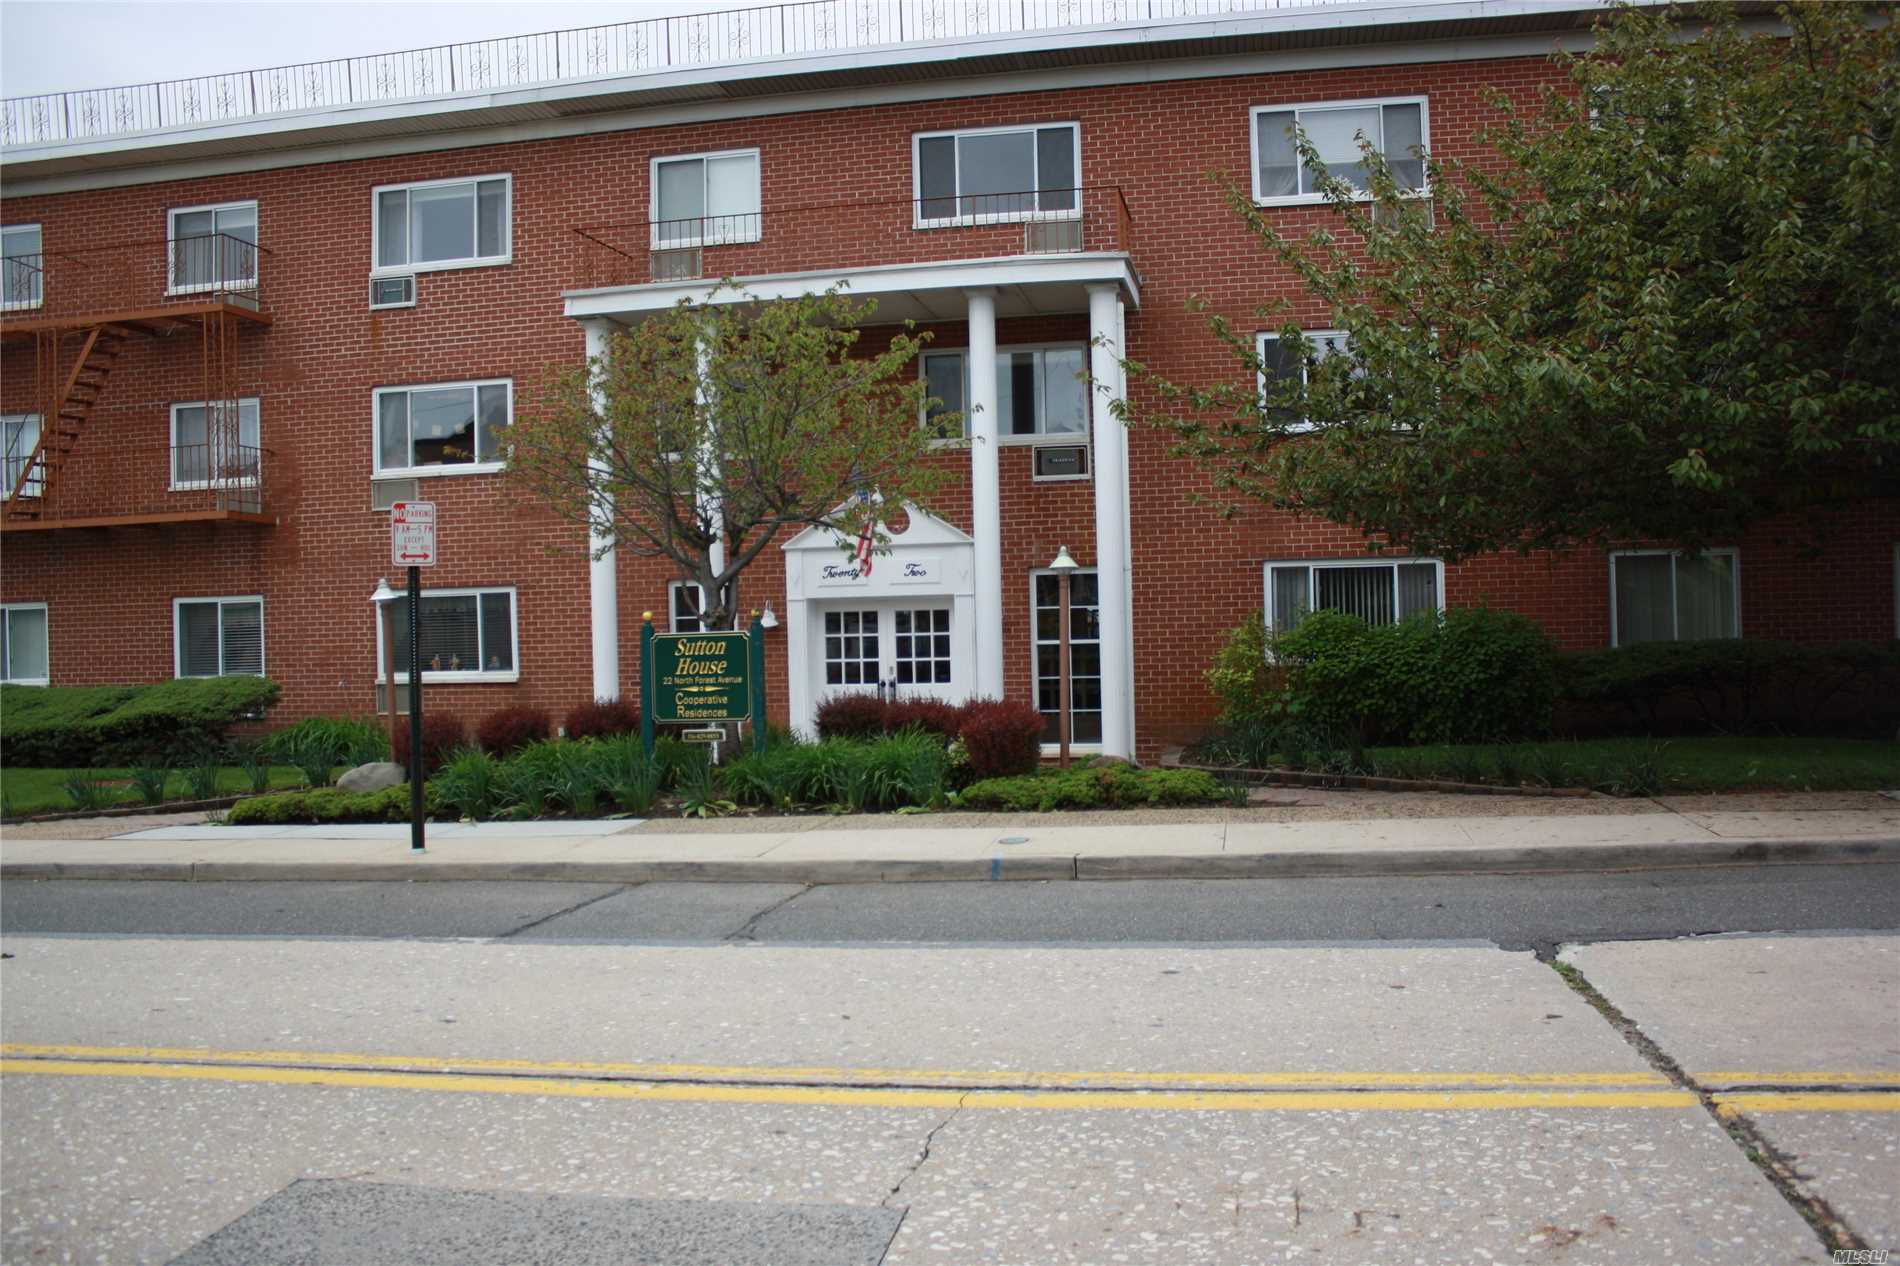 Newly Renovated Kitchen w/Granite Countertops & New Appliances, New Bath, New Carpet, Plenty of Closets, Washer and Dryer on each Floor, Common Storage area, Elevator Building, 1 Car Parking Included. Tenant pays Electric and Cable